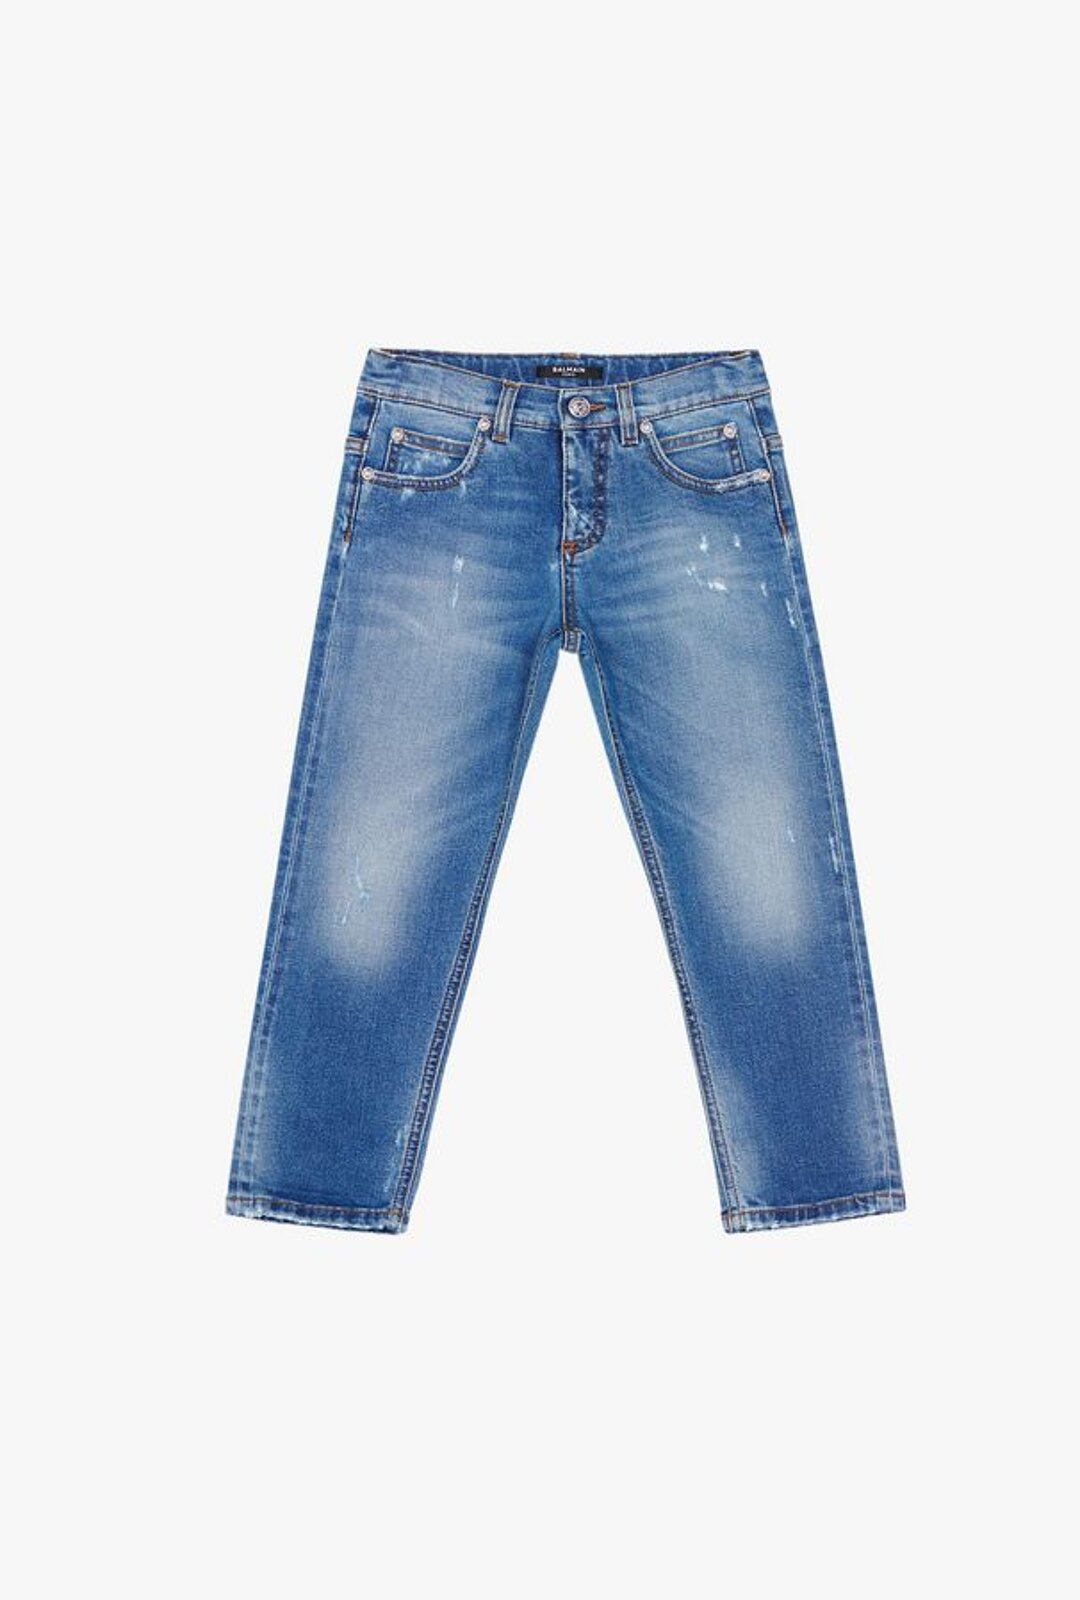 Faded Blue Cotton Jeans - Balmain Junior